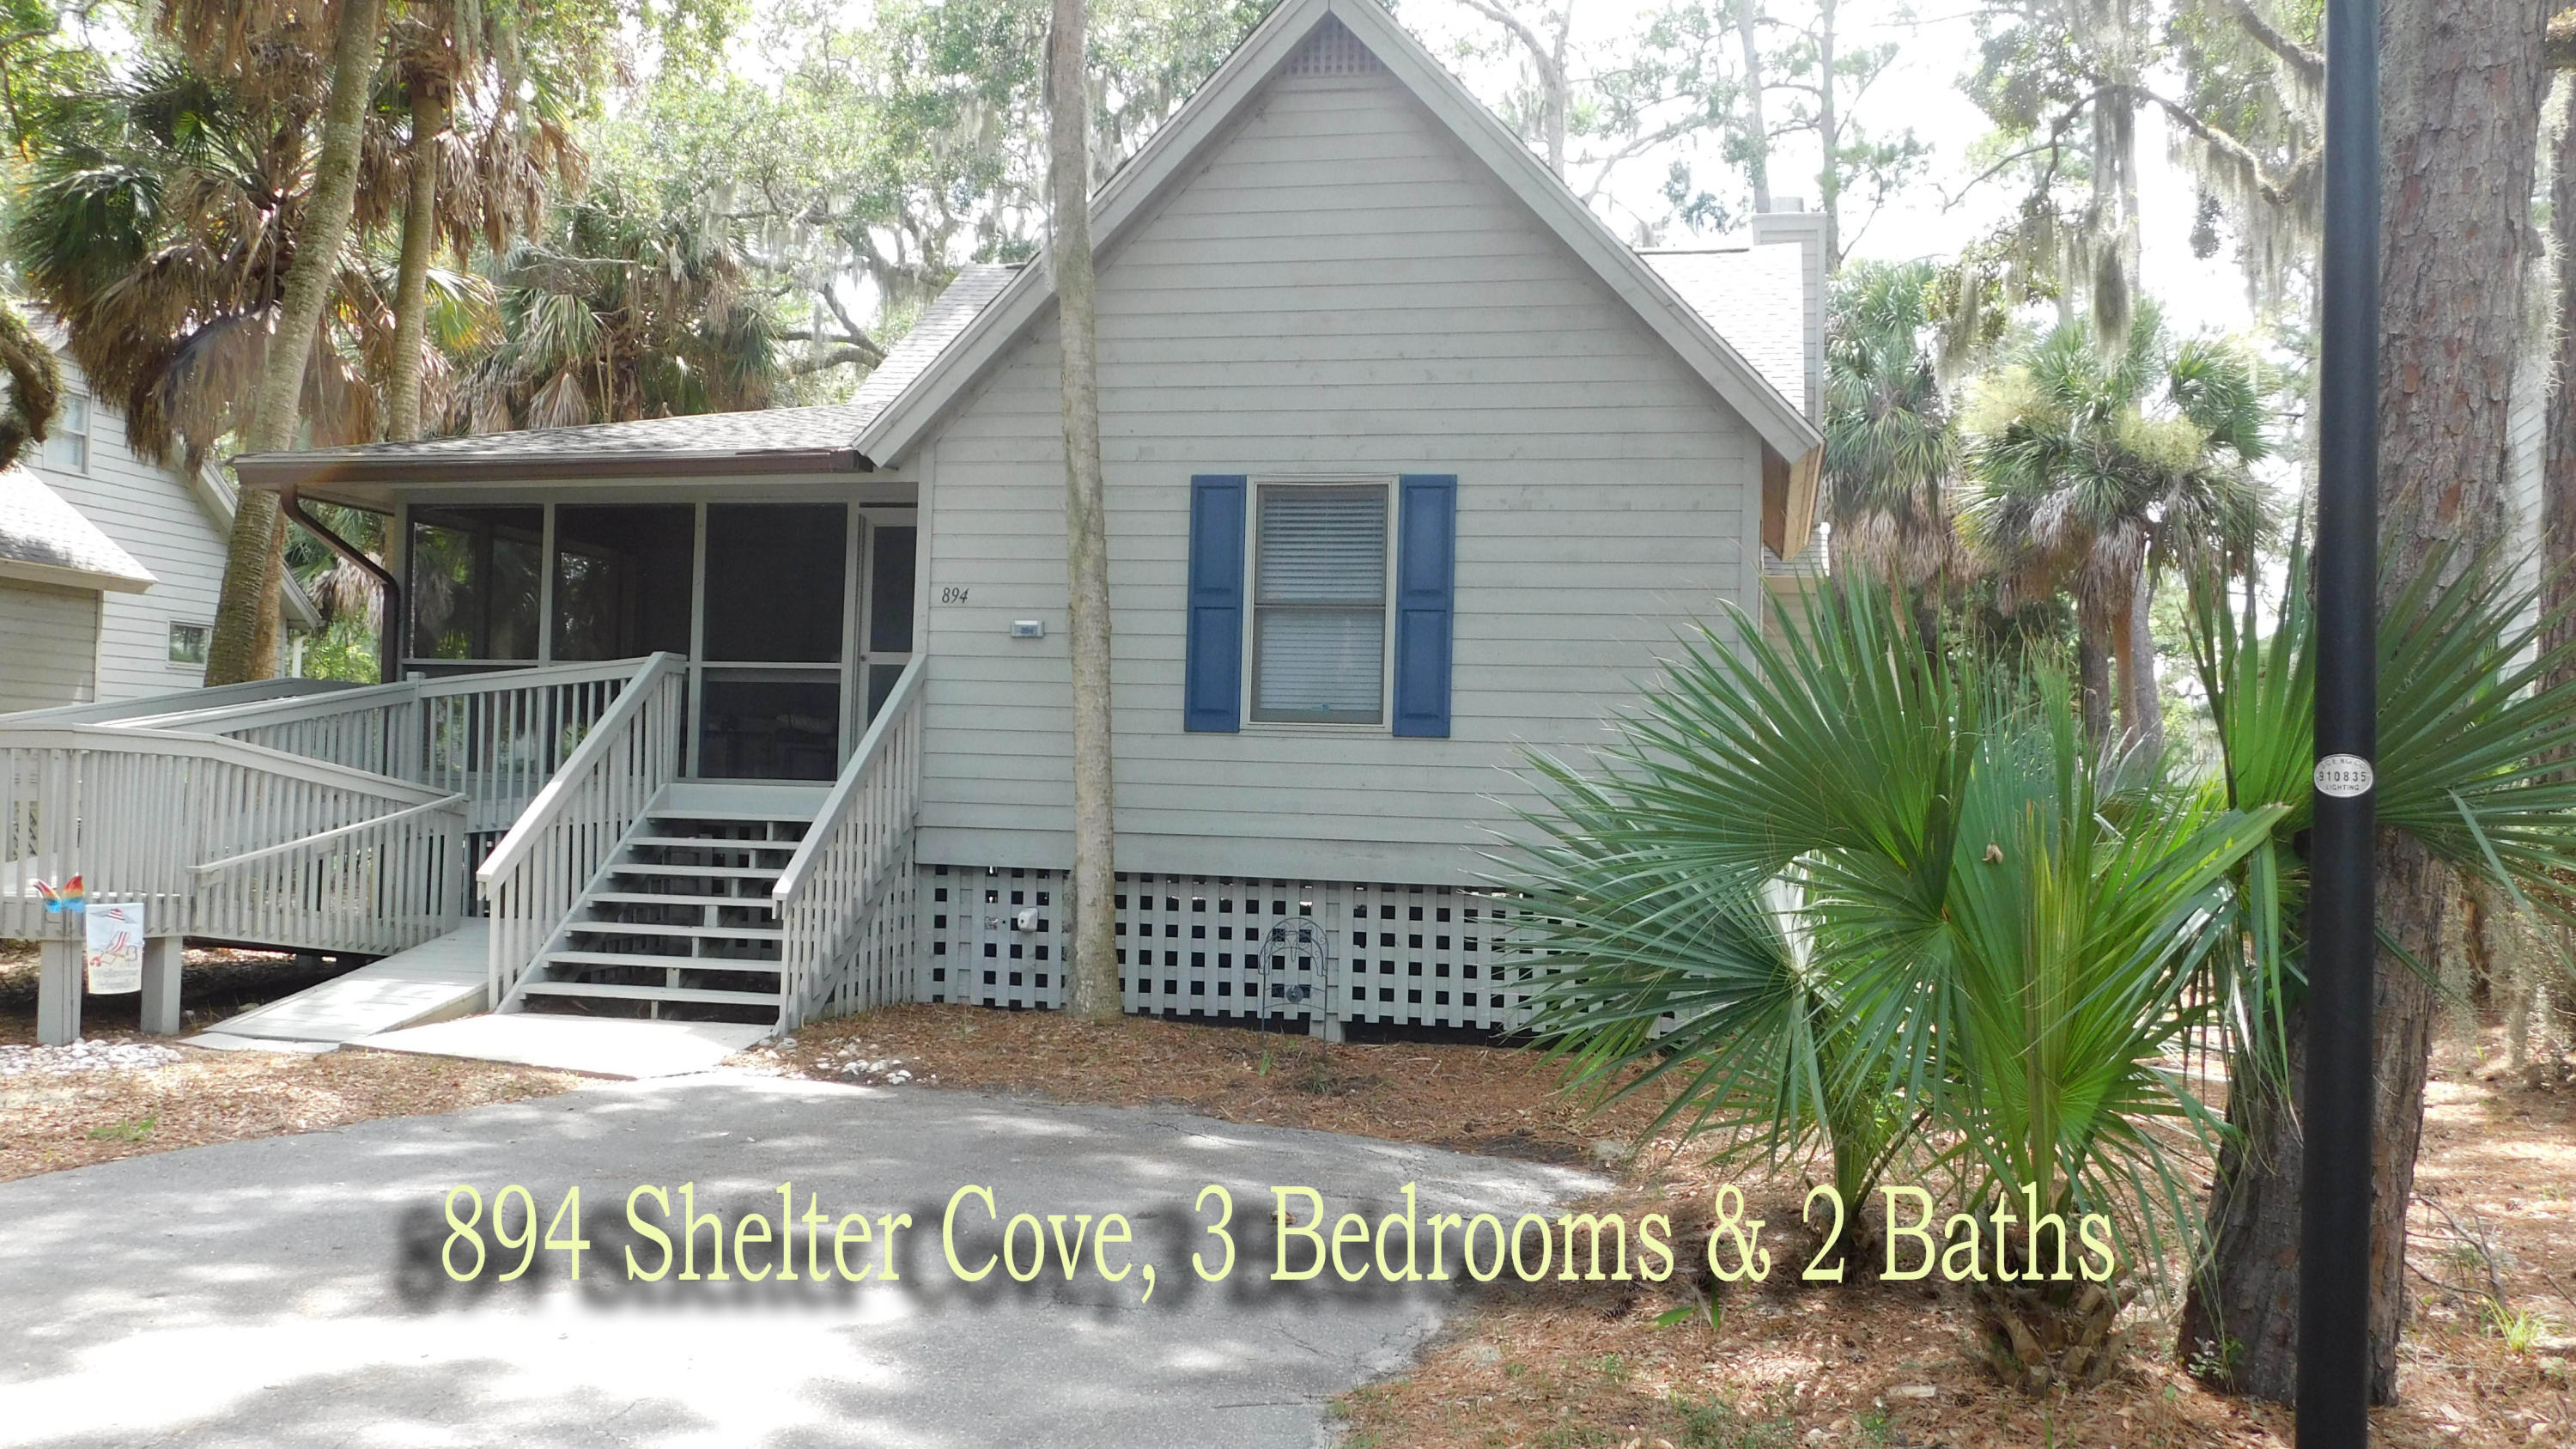 894 Shelter Cove Edisto Beach, SC 29438